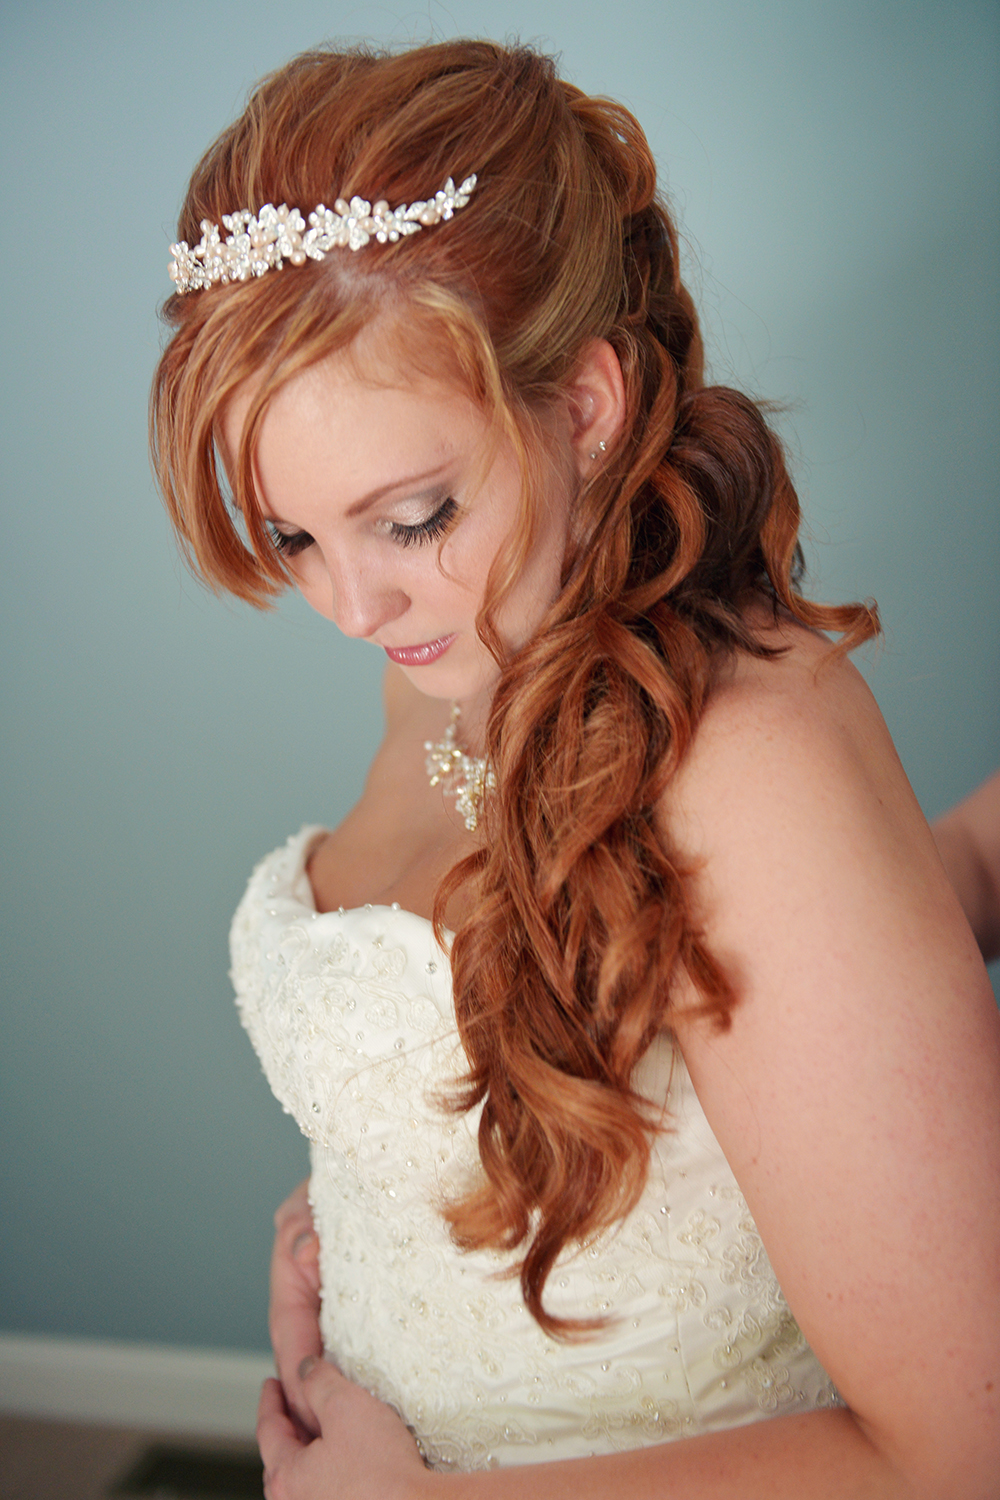 Brittany-new-hampshire-wedding-bride